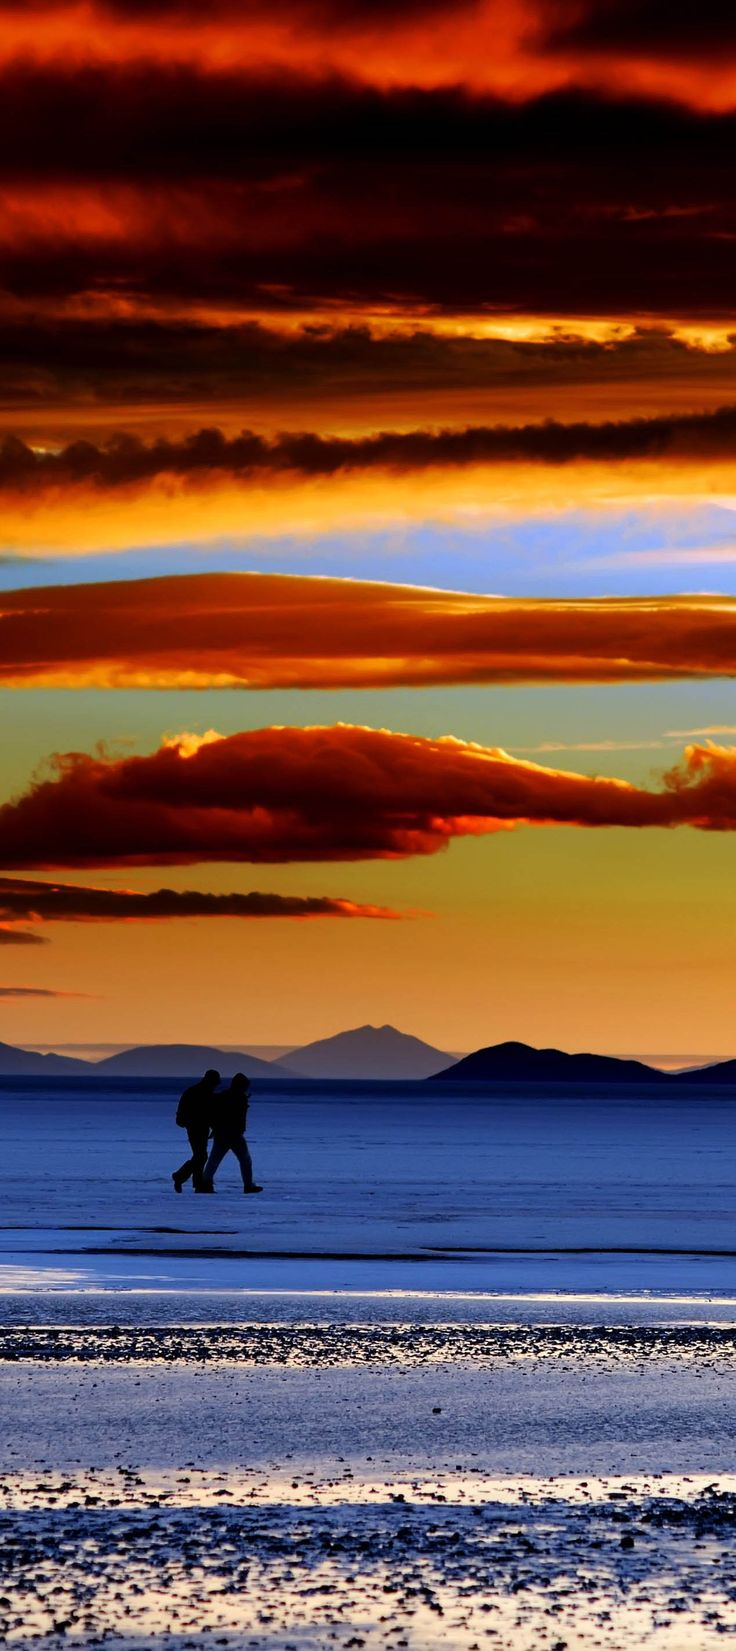 Top 20 things to do in South America: One memorable sight is this fiery sunset over the Salar de Uyuni in Bolivia.